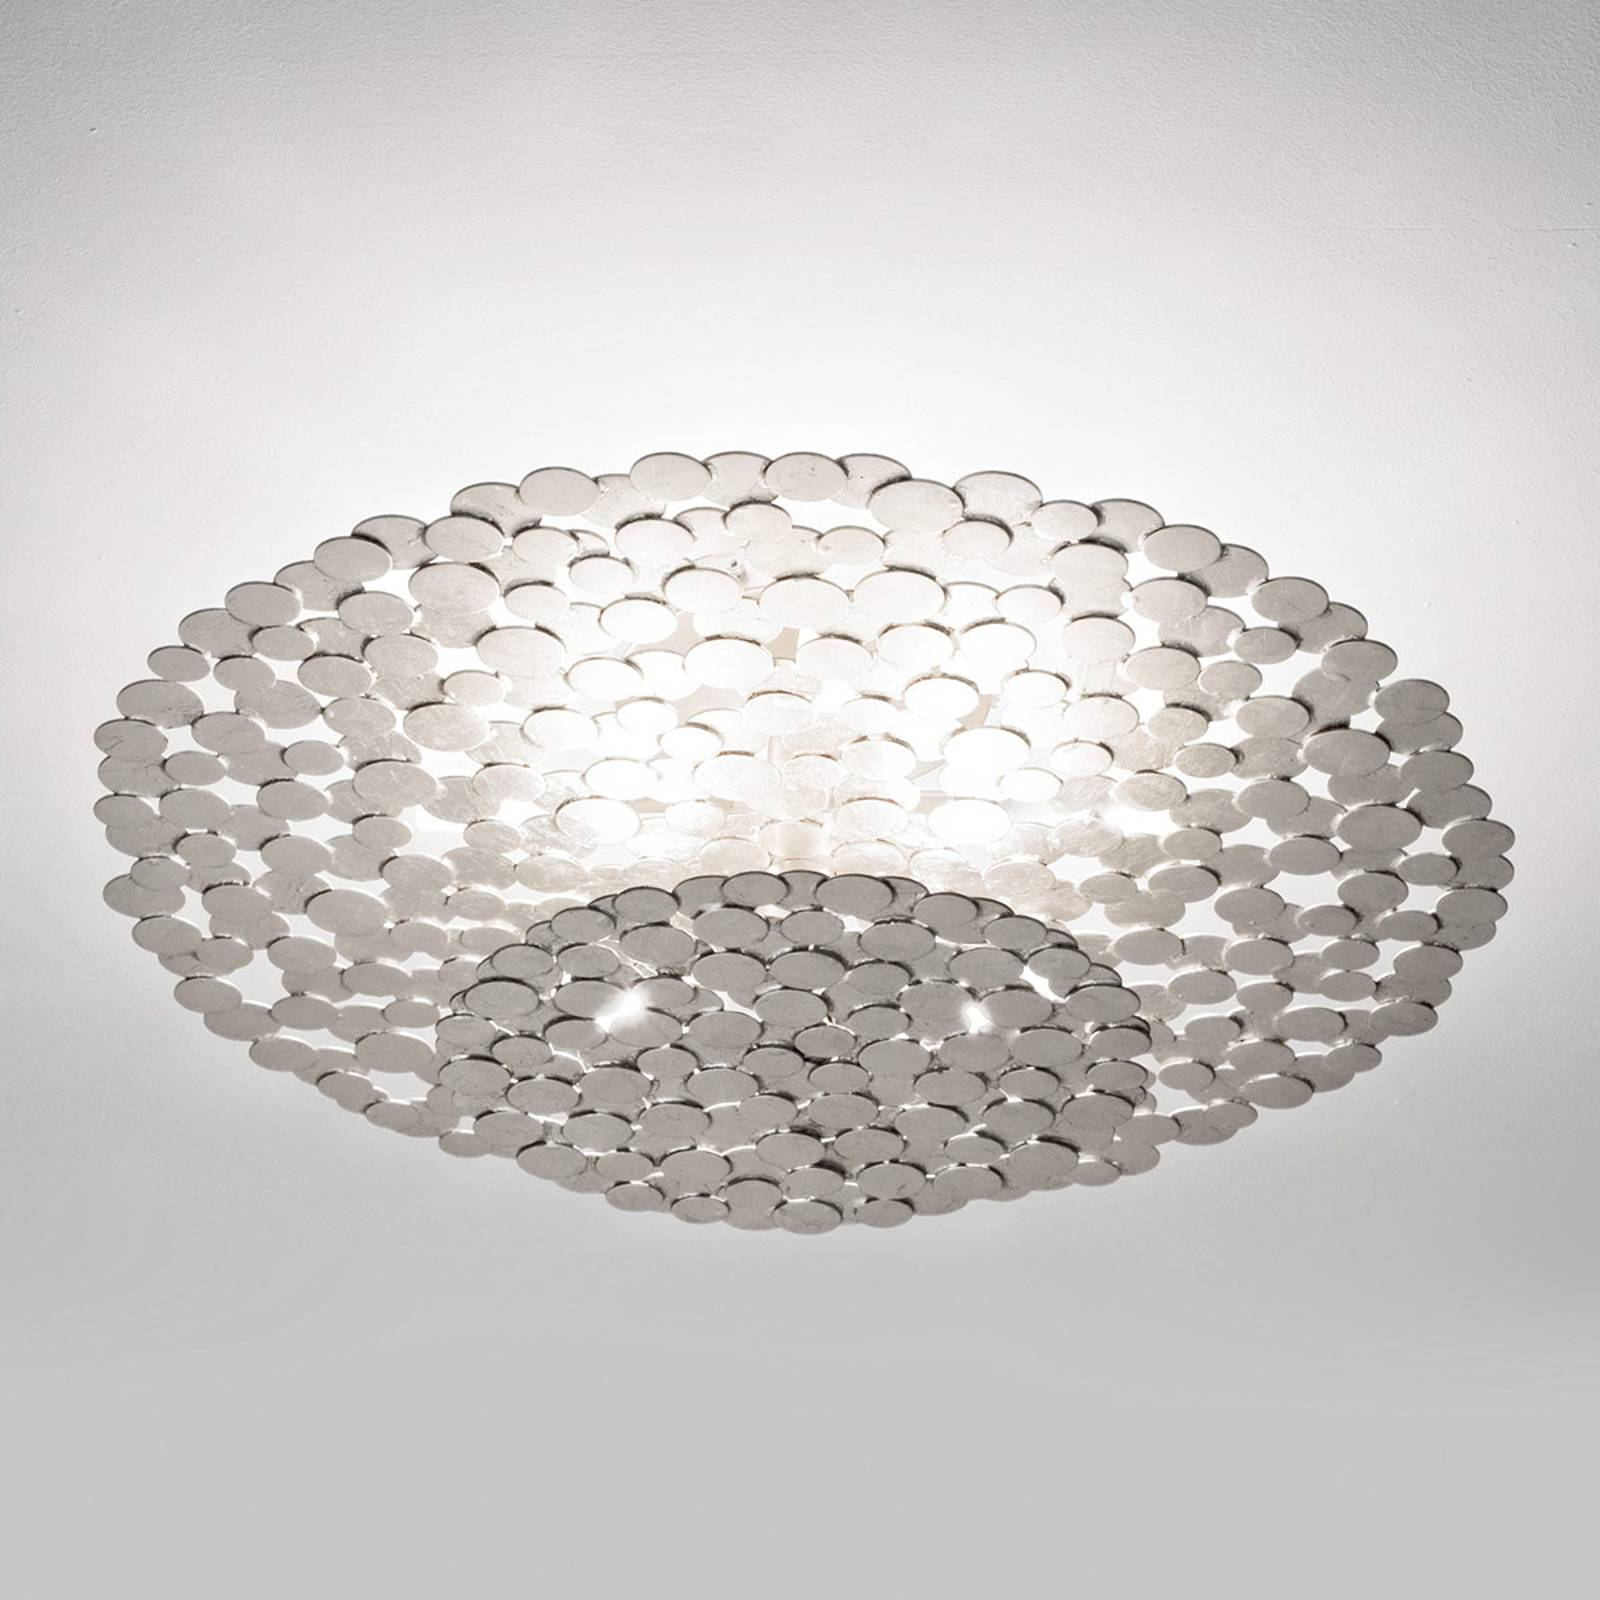 Extravagant Tresor ceiling light 45 cm, silver from Terzani